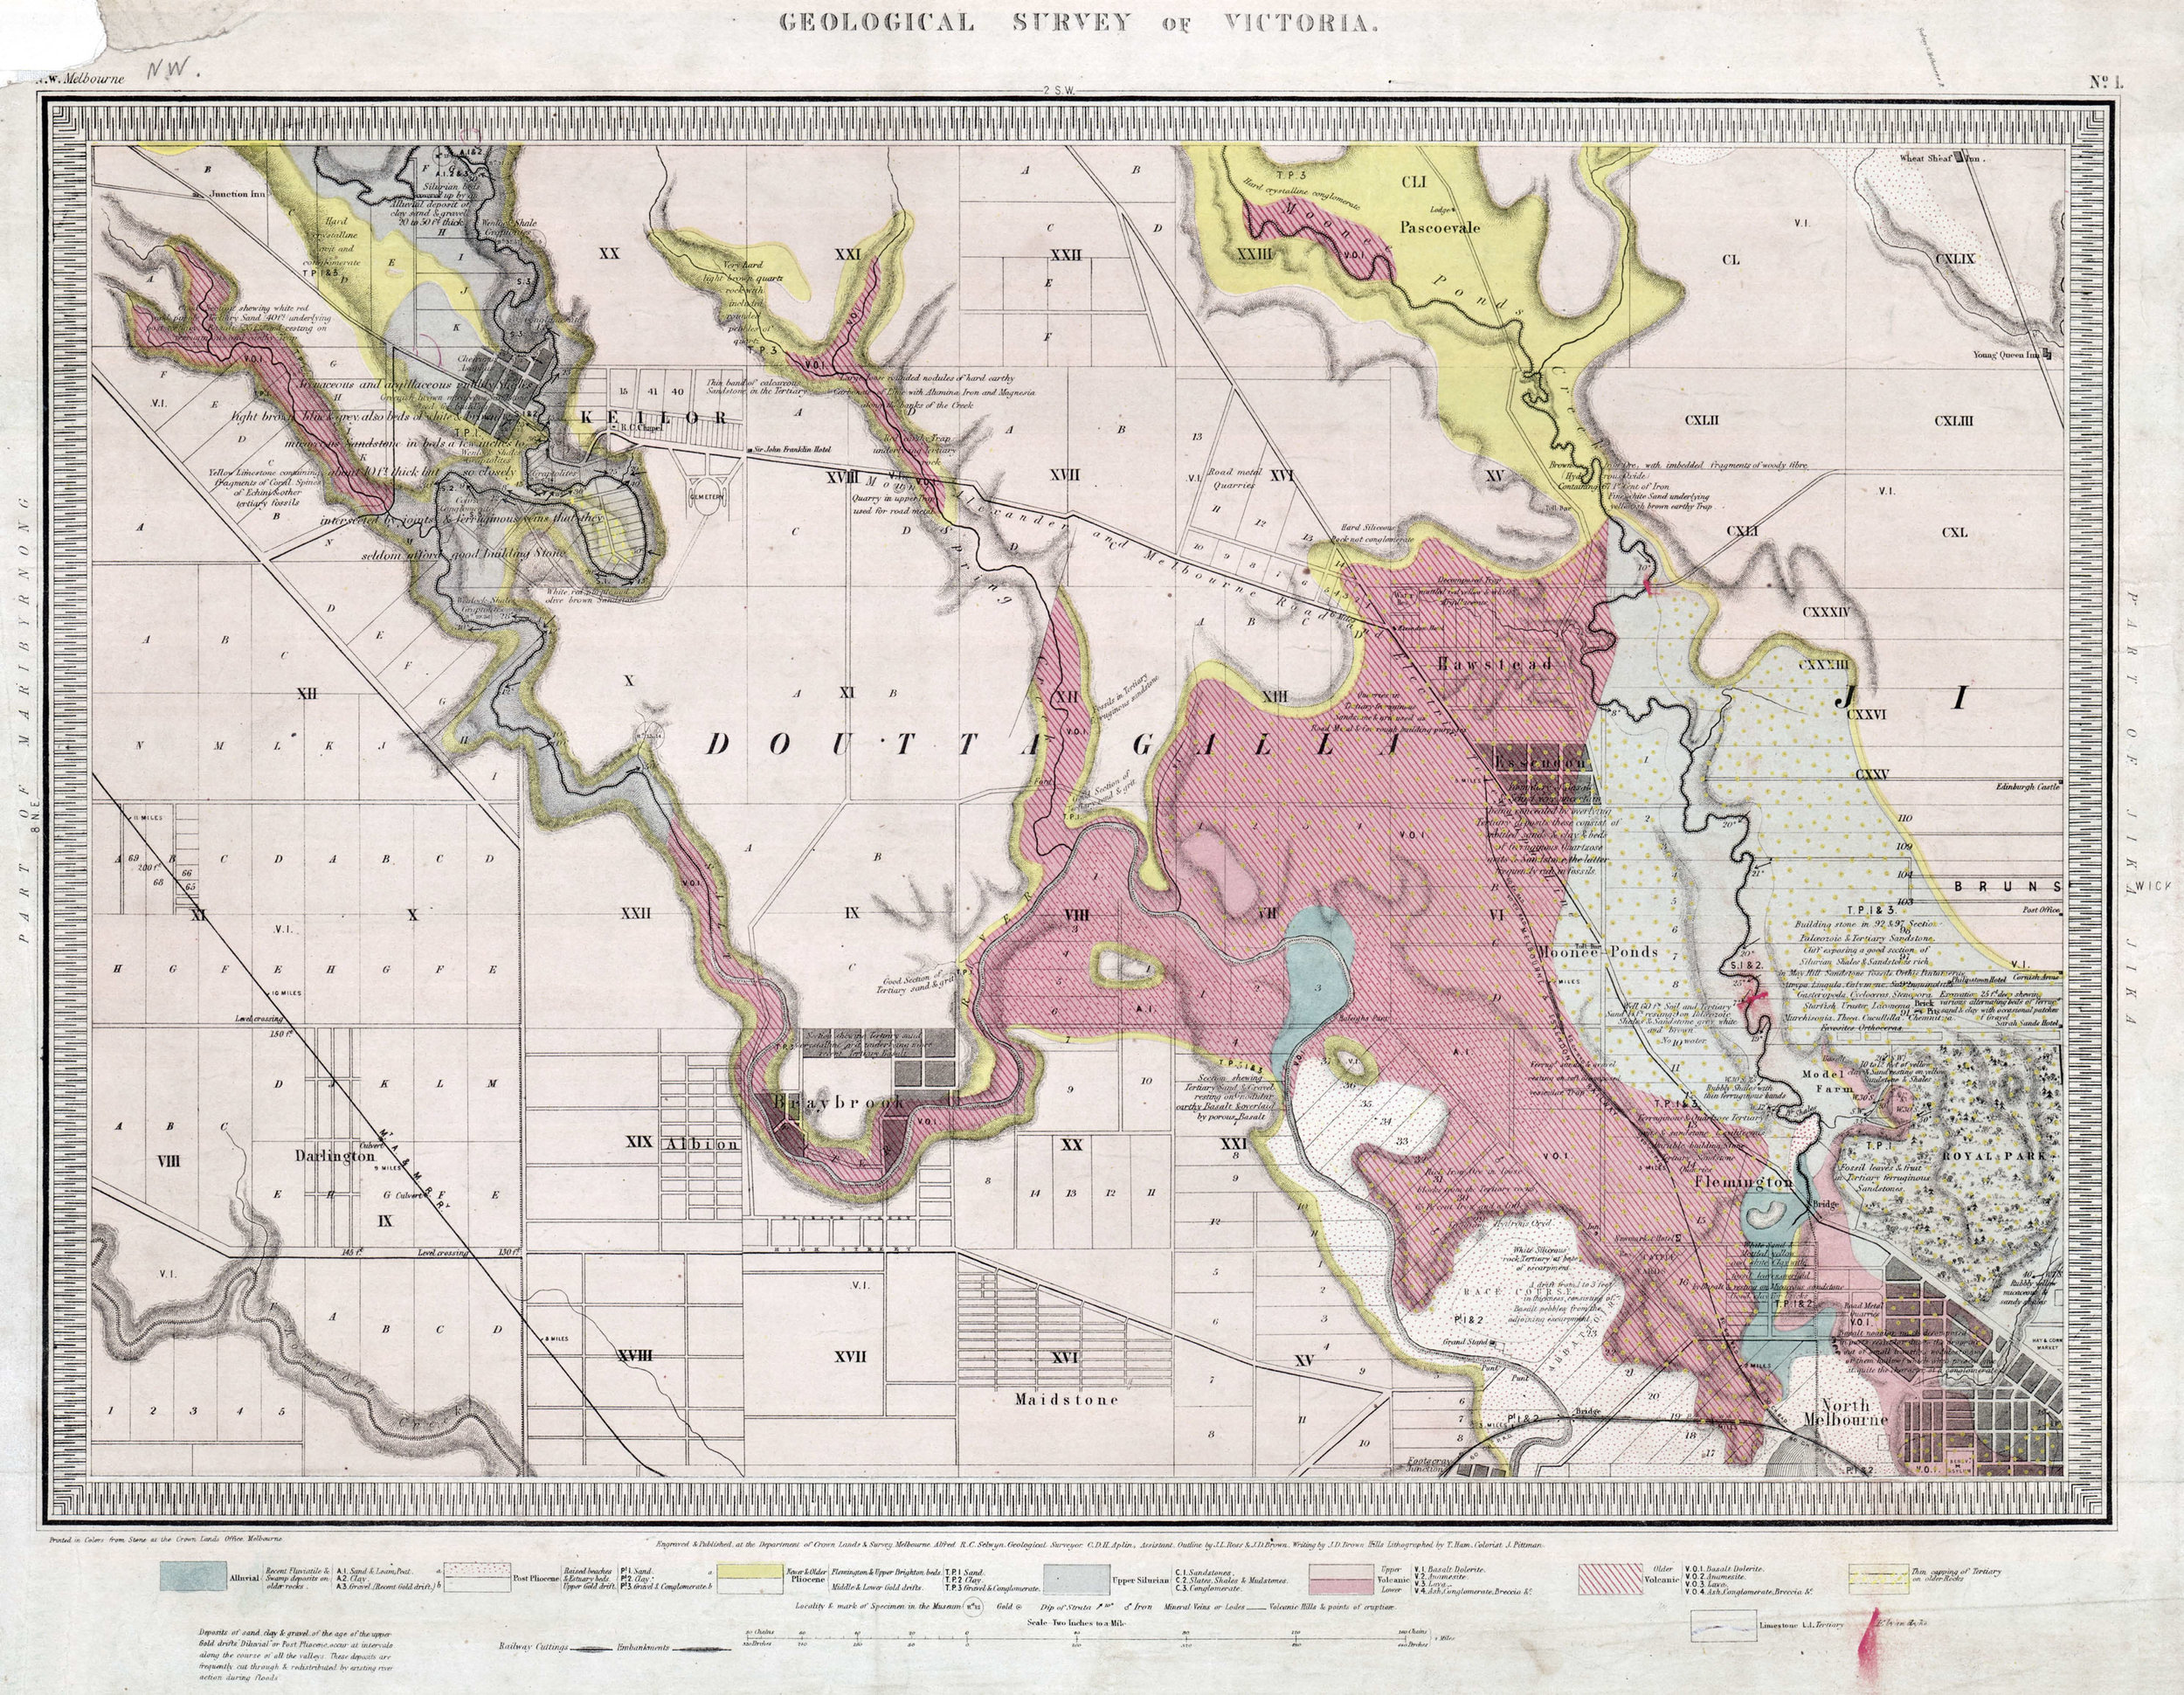 Geological Survey of Victoria., undated. Quarter Sheet 1 NW. 40 chains to 1 inch, geological map. Department of Mines, Victoria.